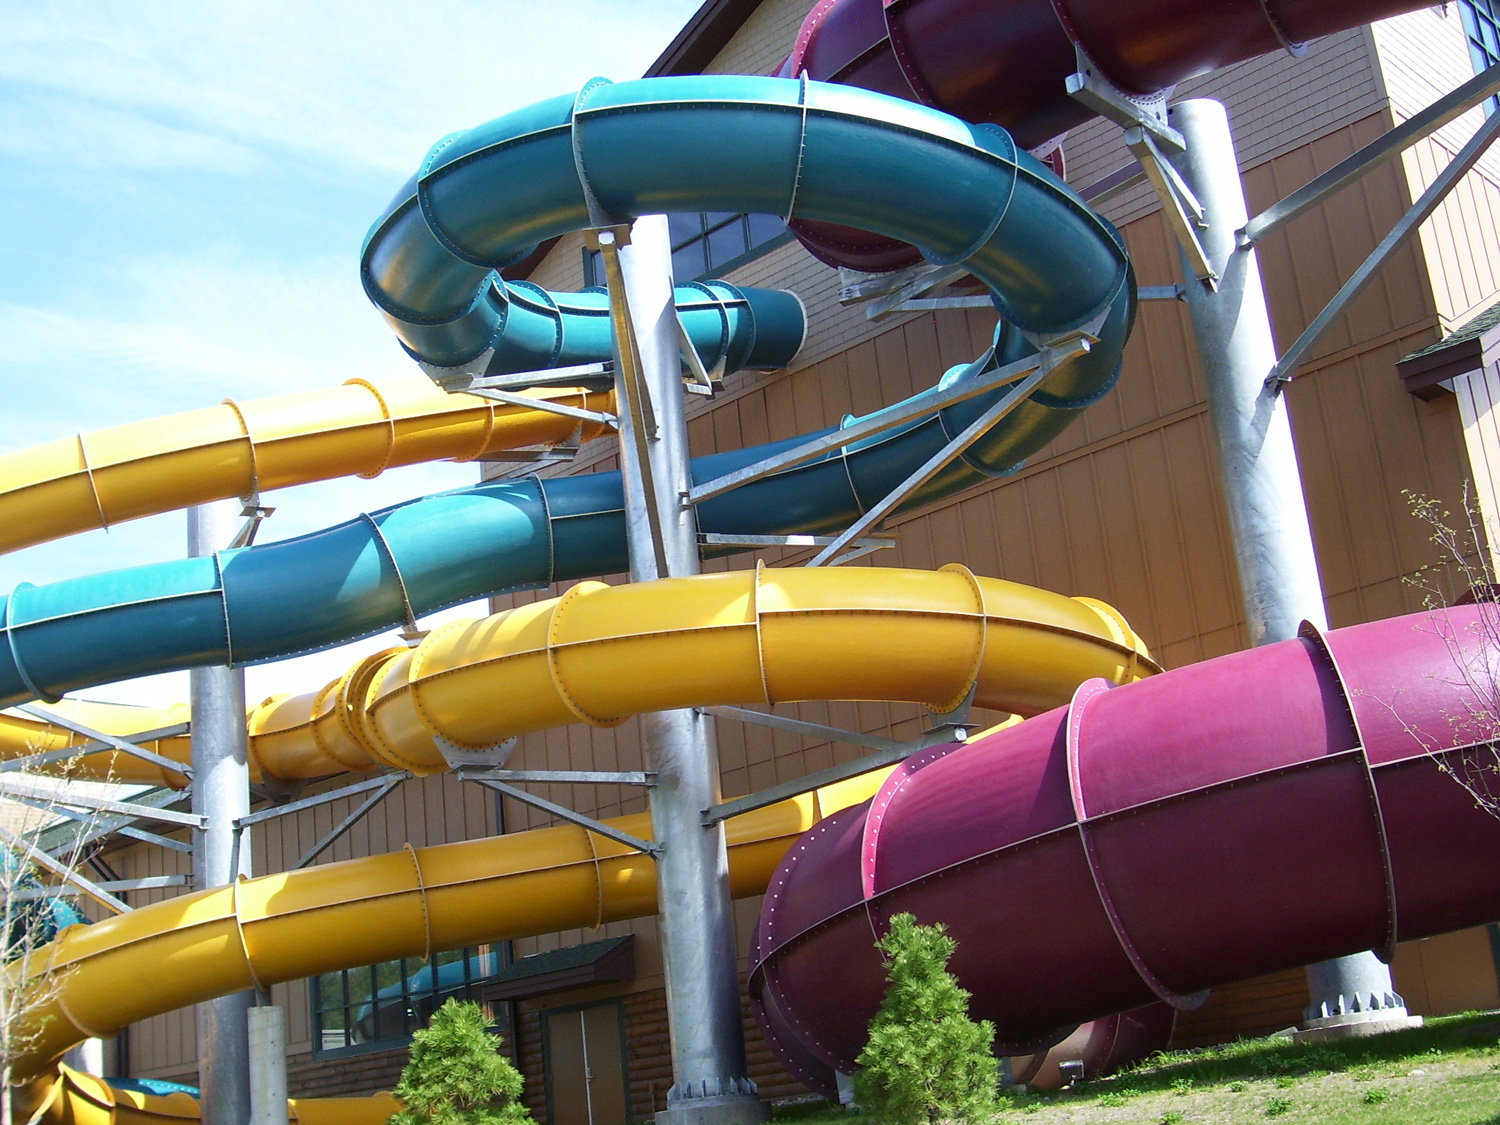 100 1993 2 - 2014 Waterpark Resorts Supply and Demand Update